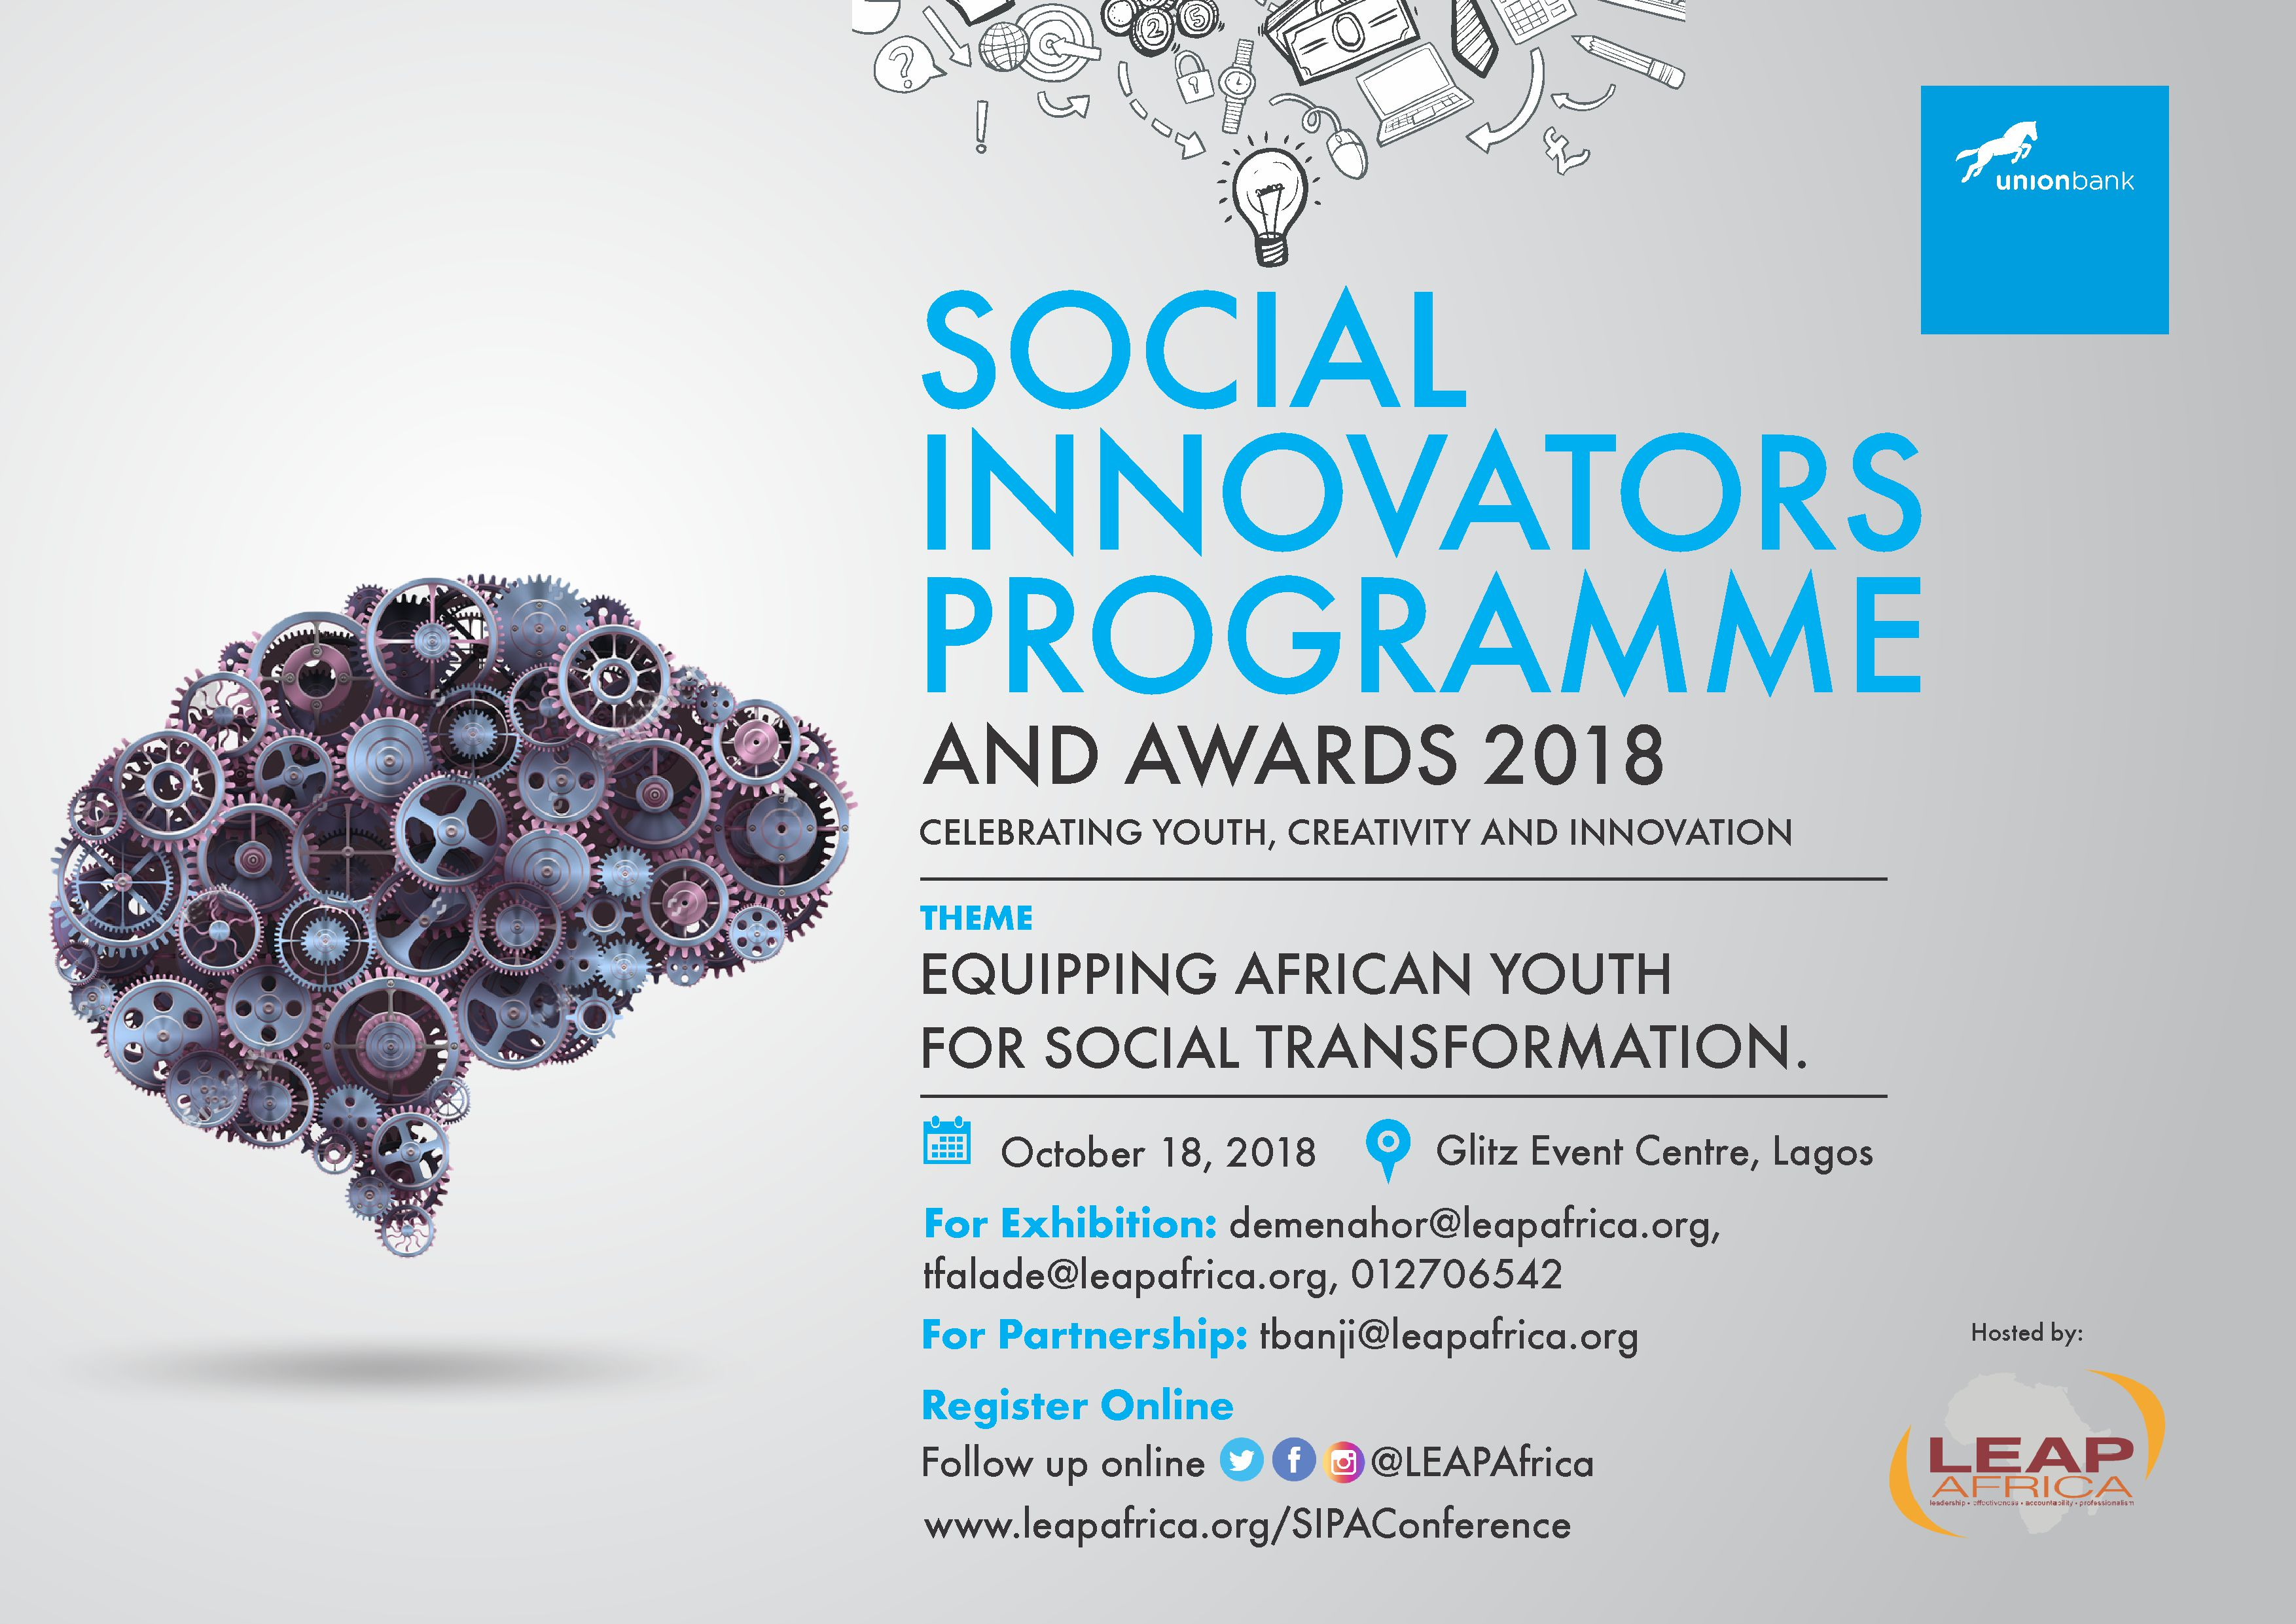 Social Innovators' Programme & Awards 2018 (information image)